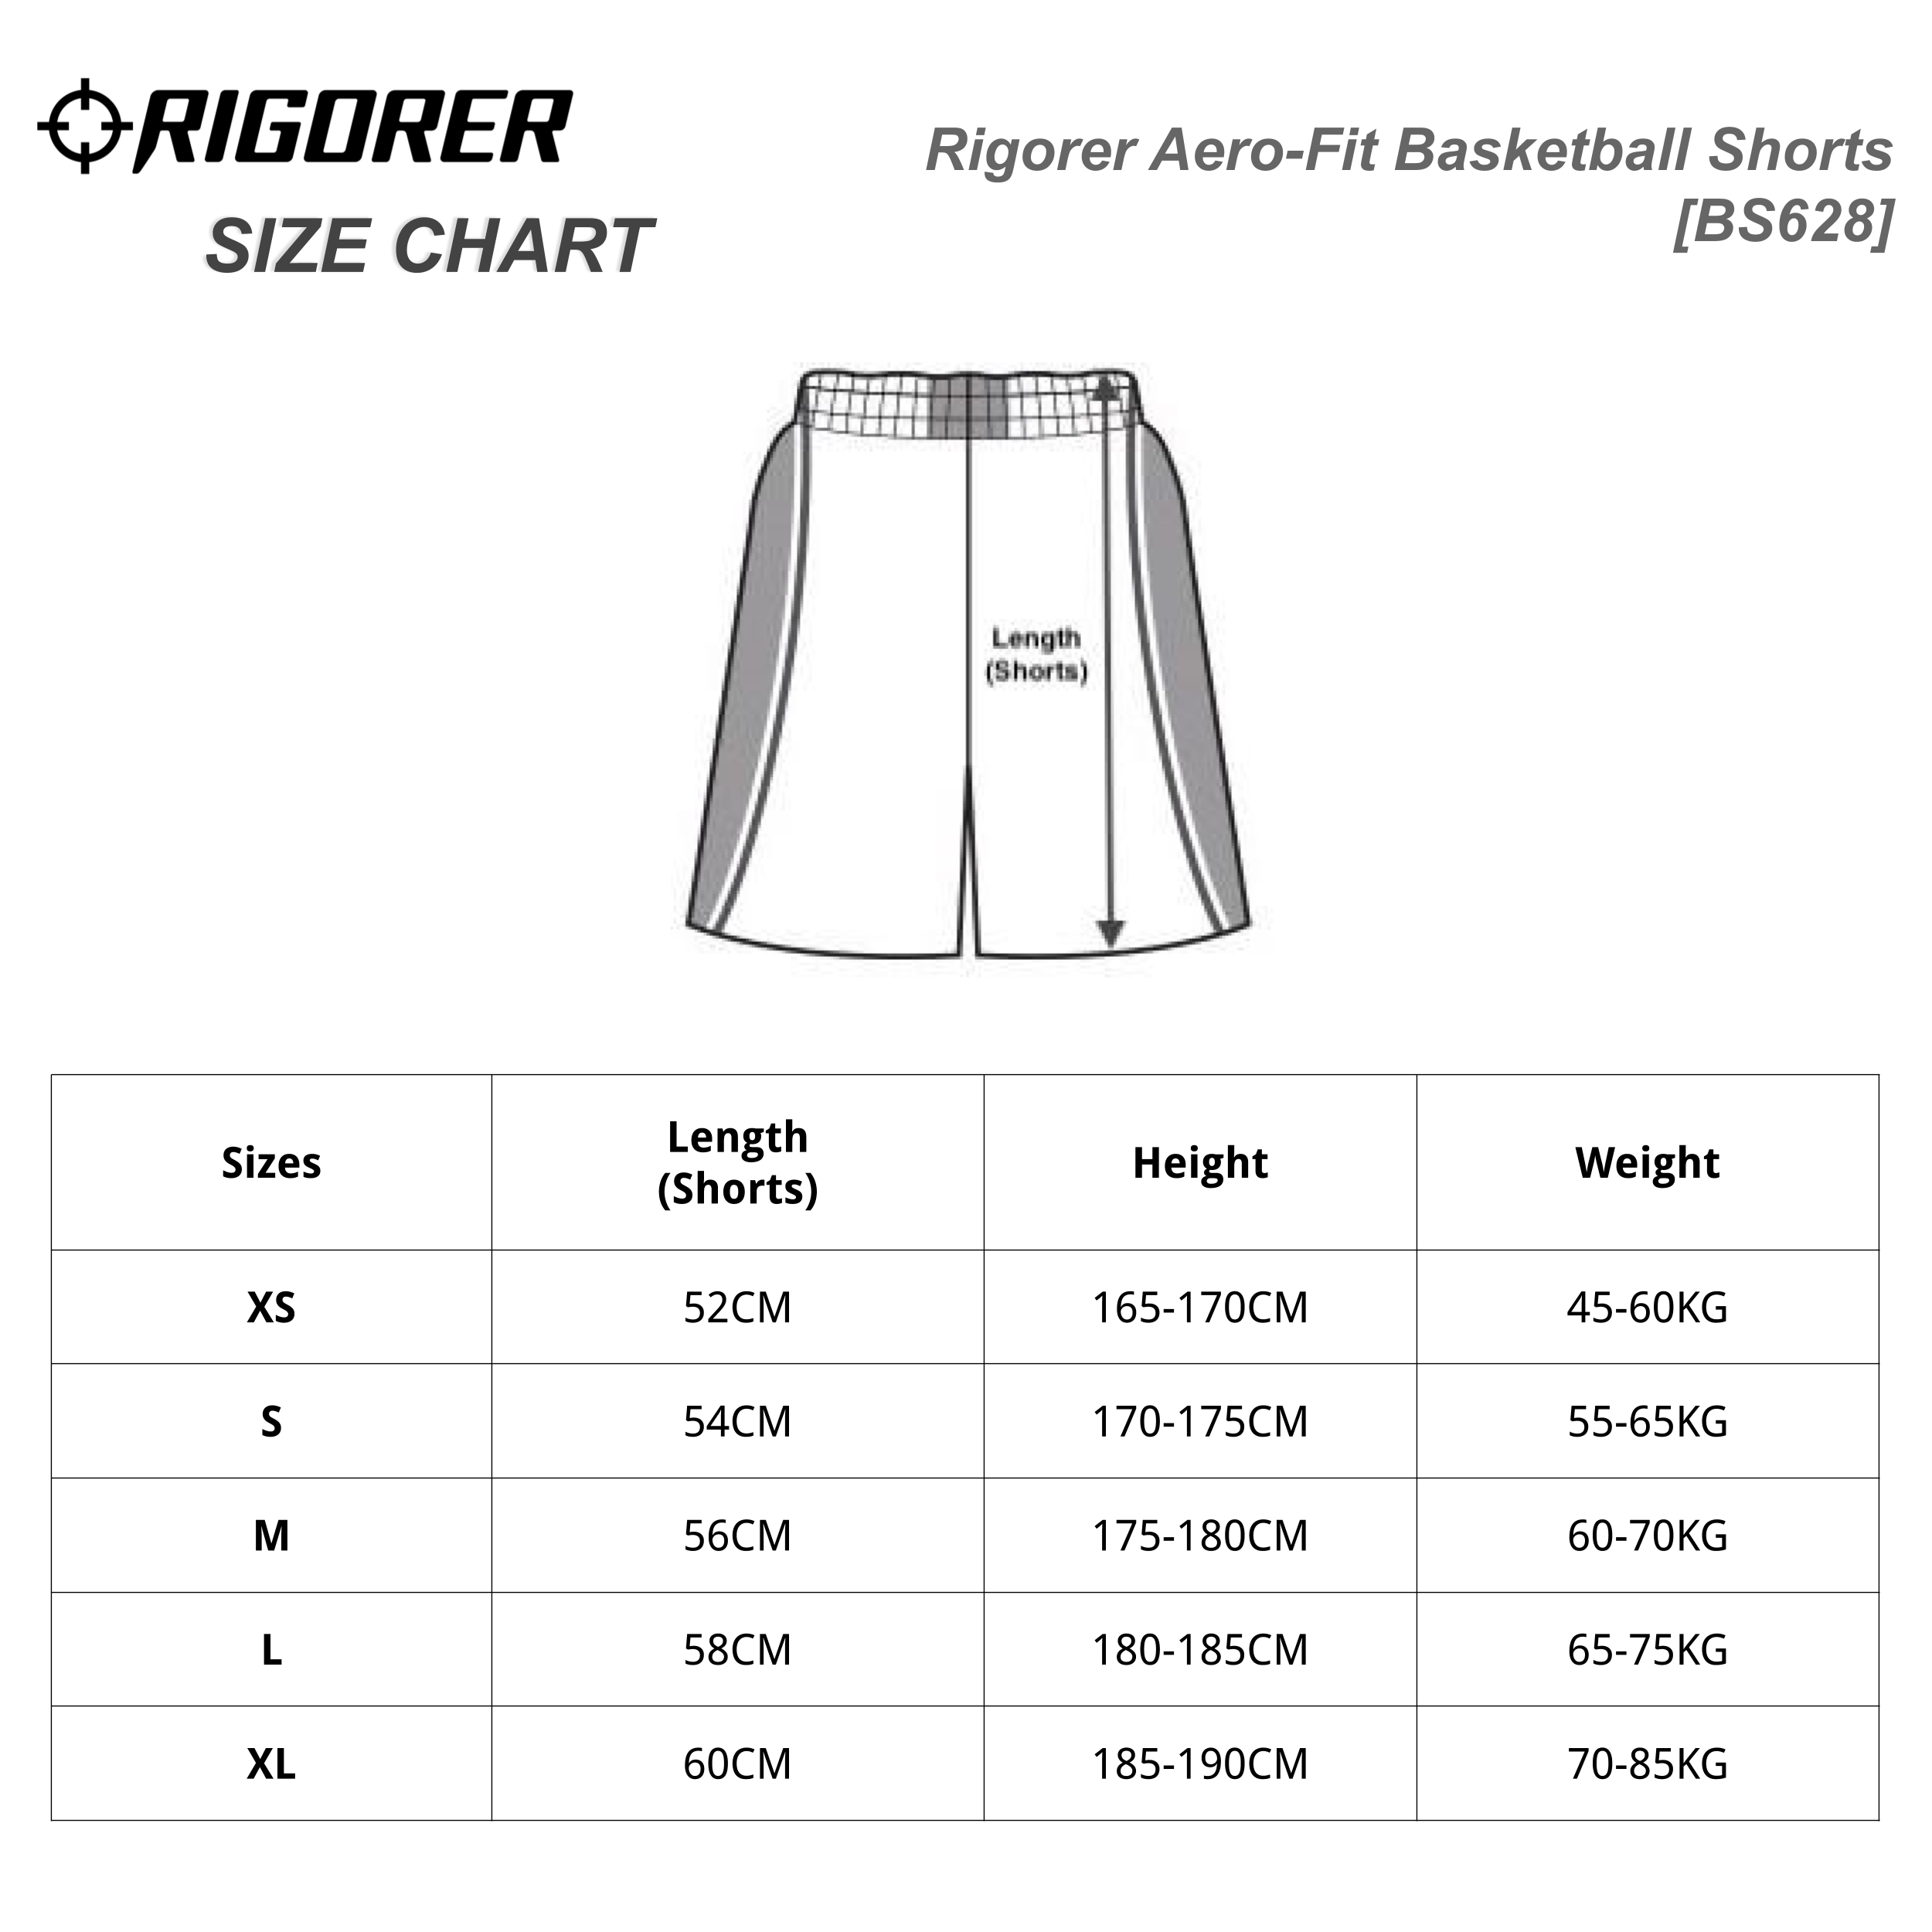 Rigorer Aero-Fit Basketball Shorts [BS628] Sizing Chart